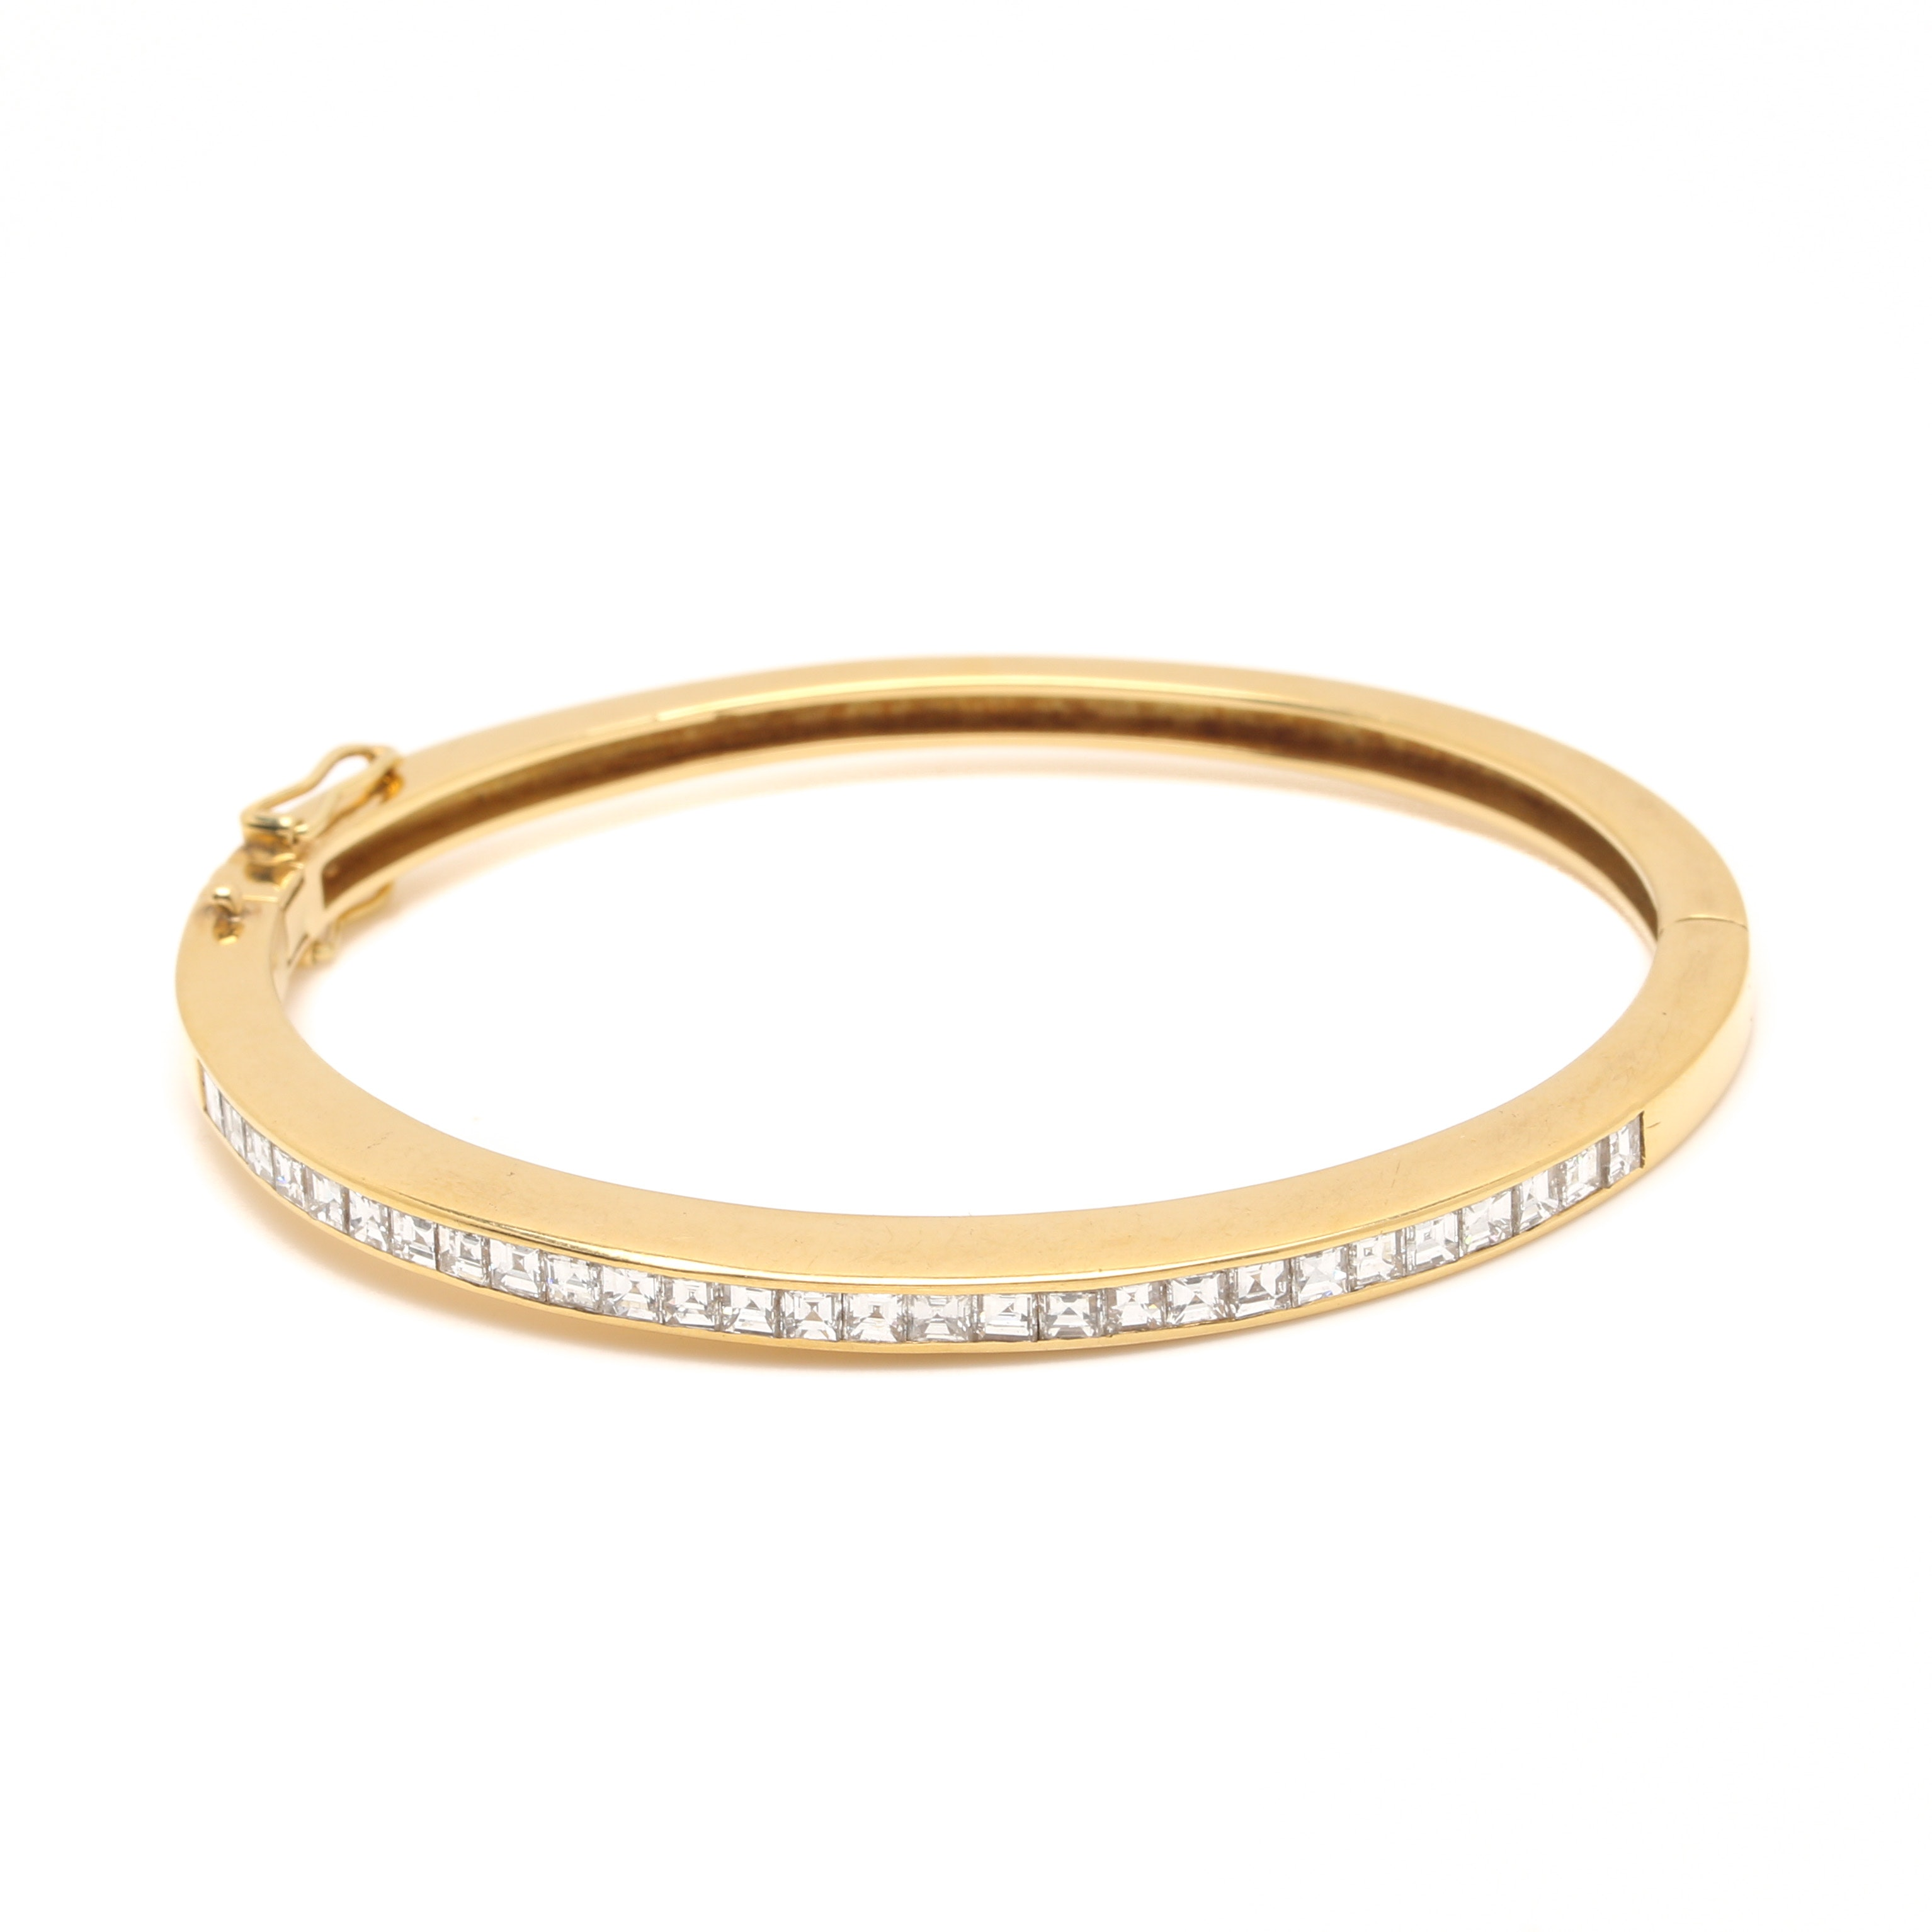 18K Yellow Gold and Diamond Bracelet